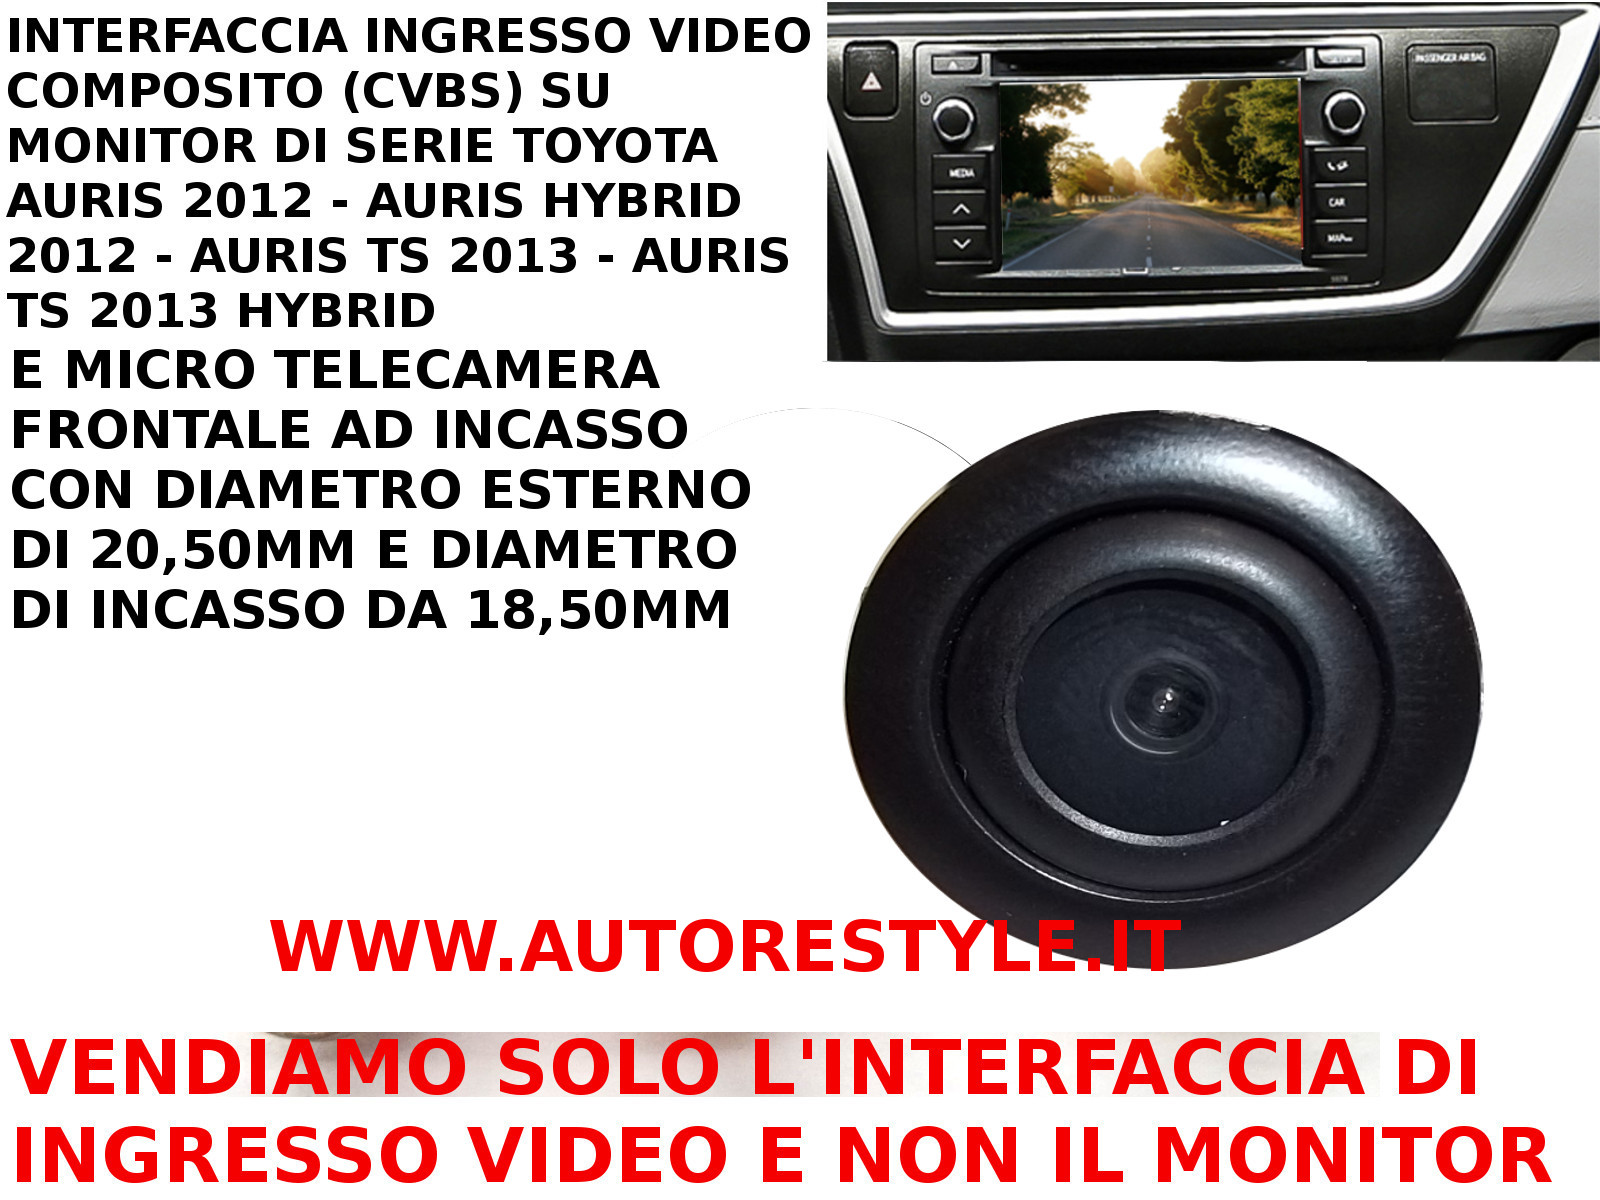 AURIS VIDEO IN + fronta camera